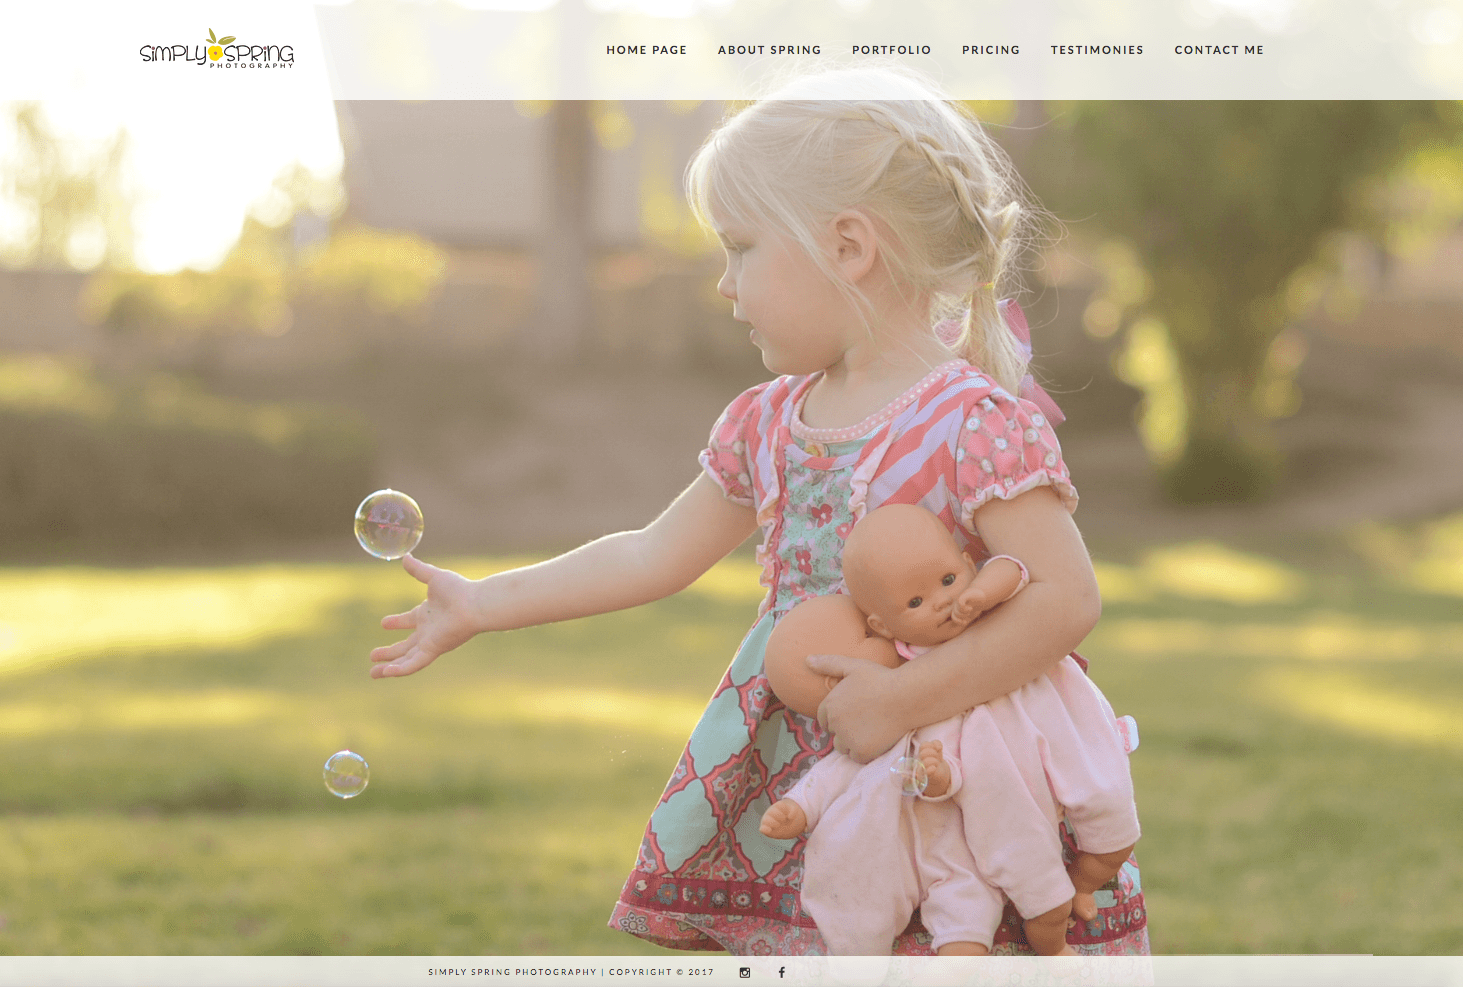 Simply Spring Photography Website Design